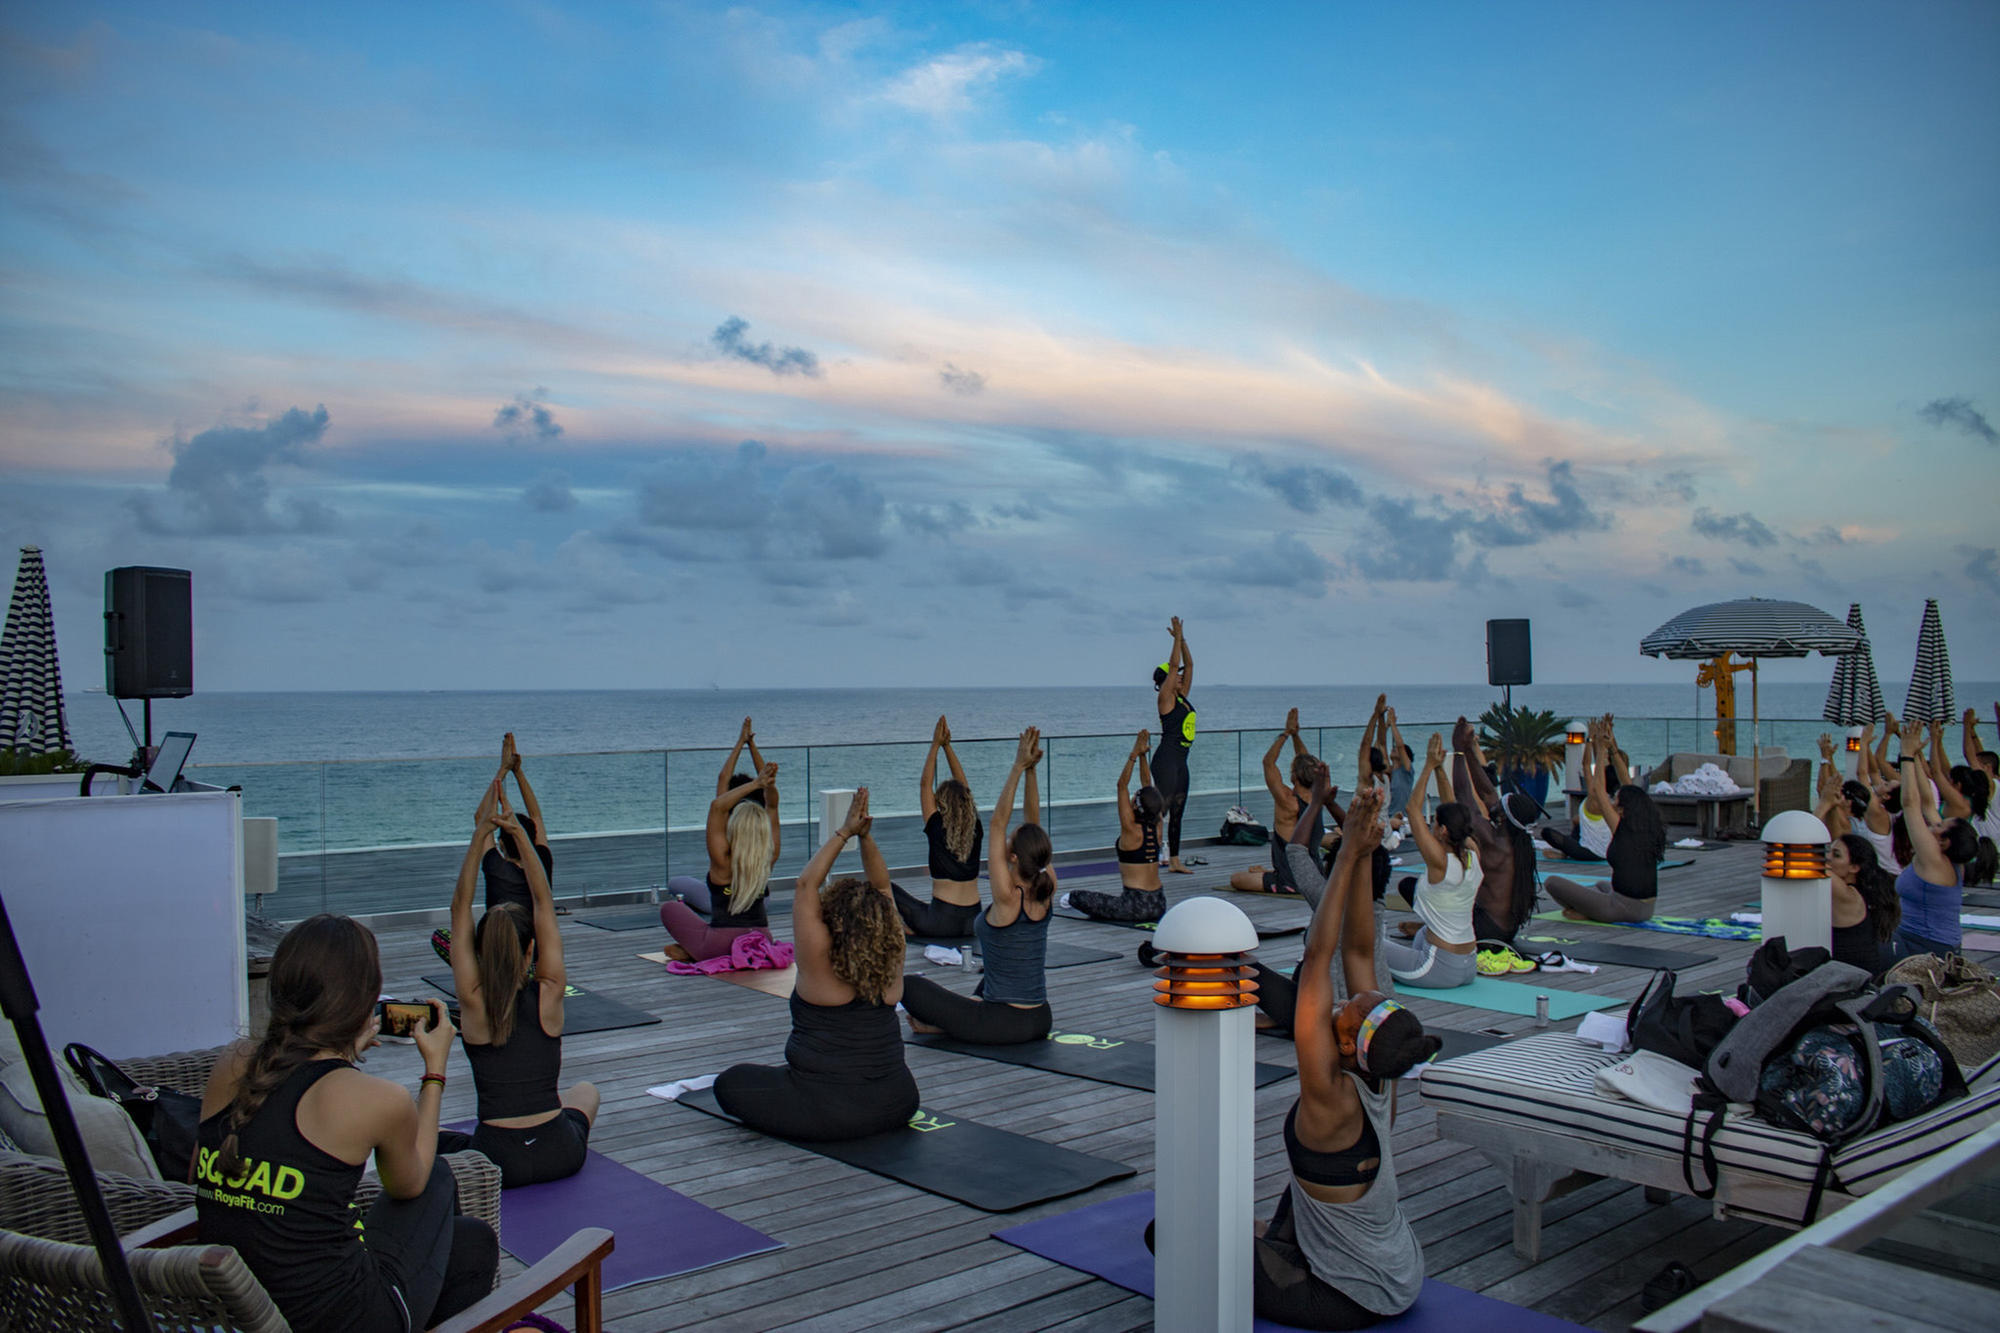 Sorry, that naked yoga fort lauderdale topic simply